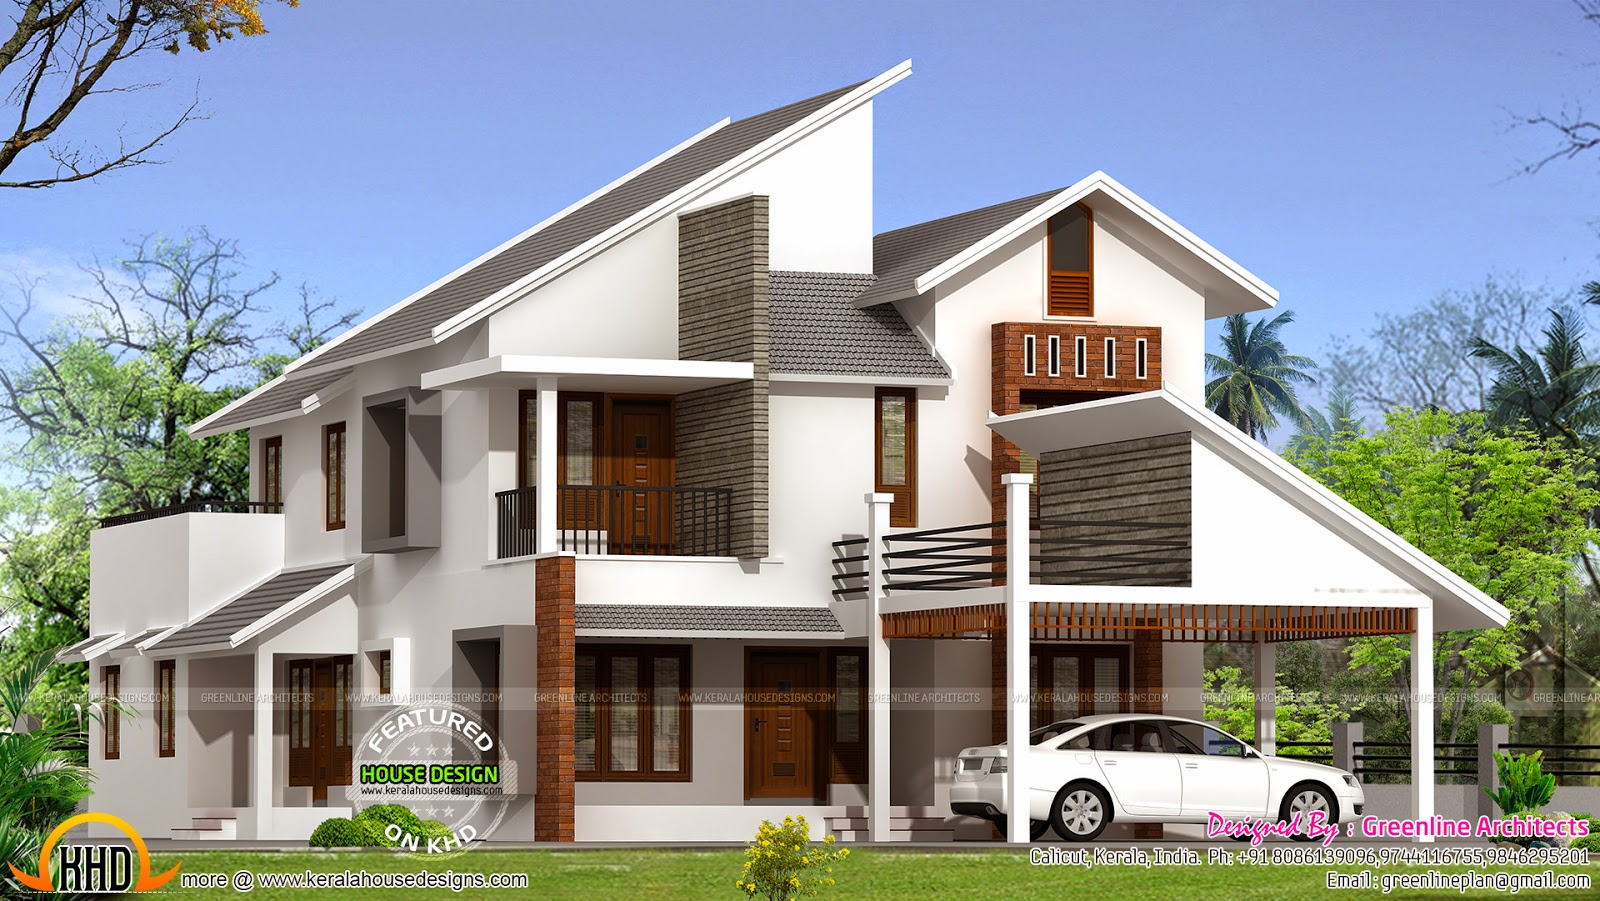 New modern house plan kerala home design and floor plans for New design house image